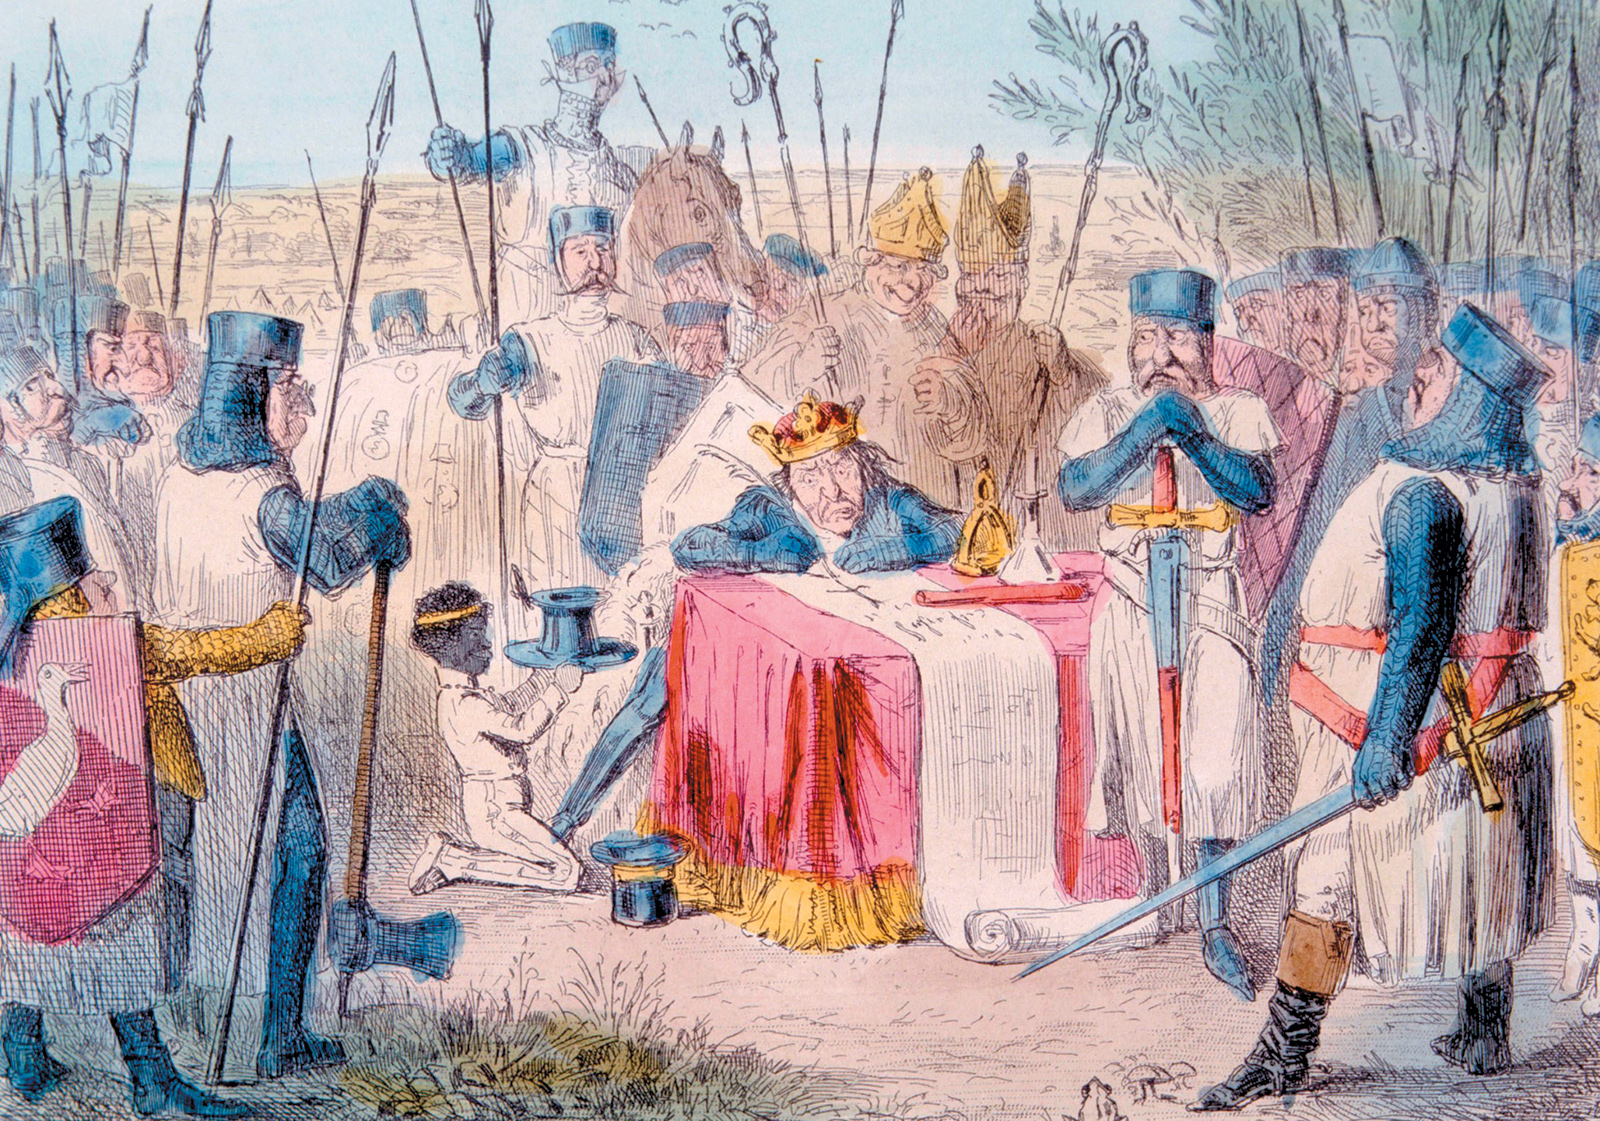 King John of England approving the Magna Carta in 1215; illustration by John Leech, 1875